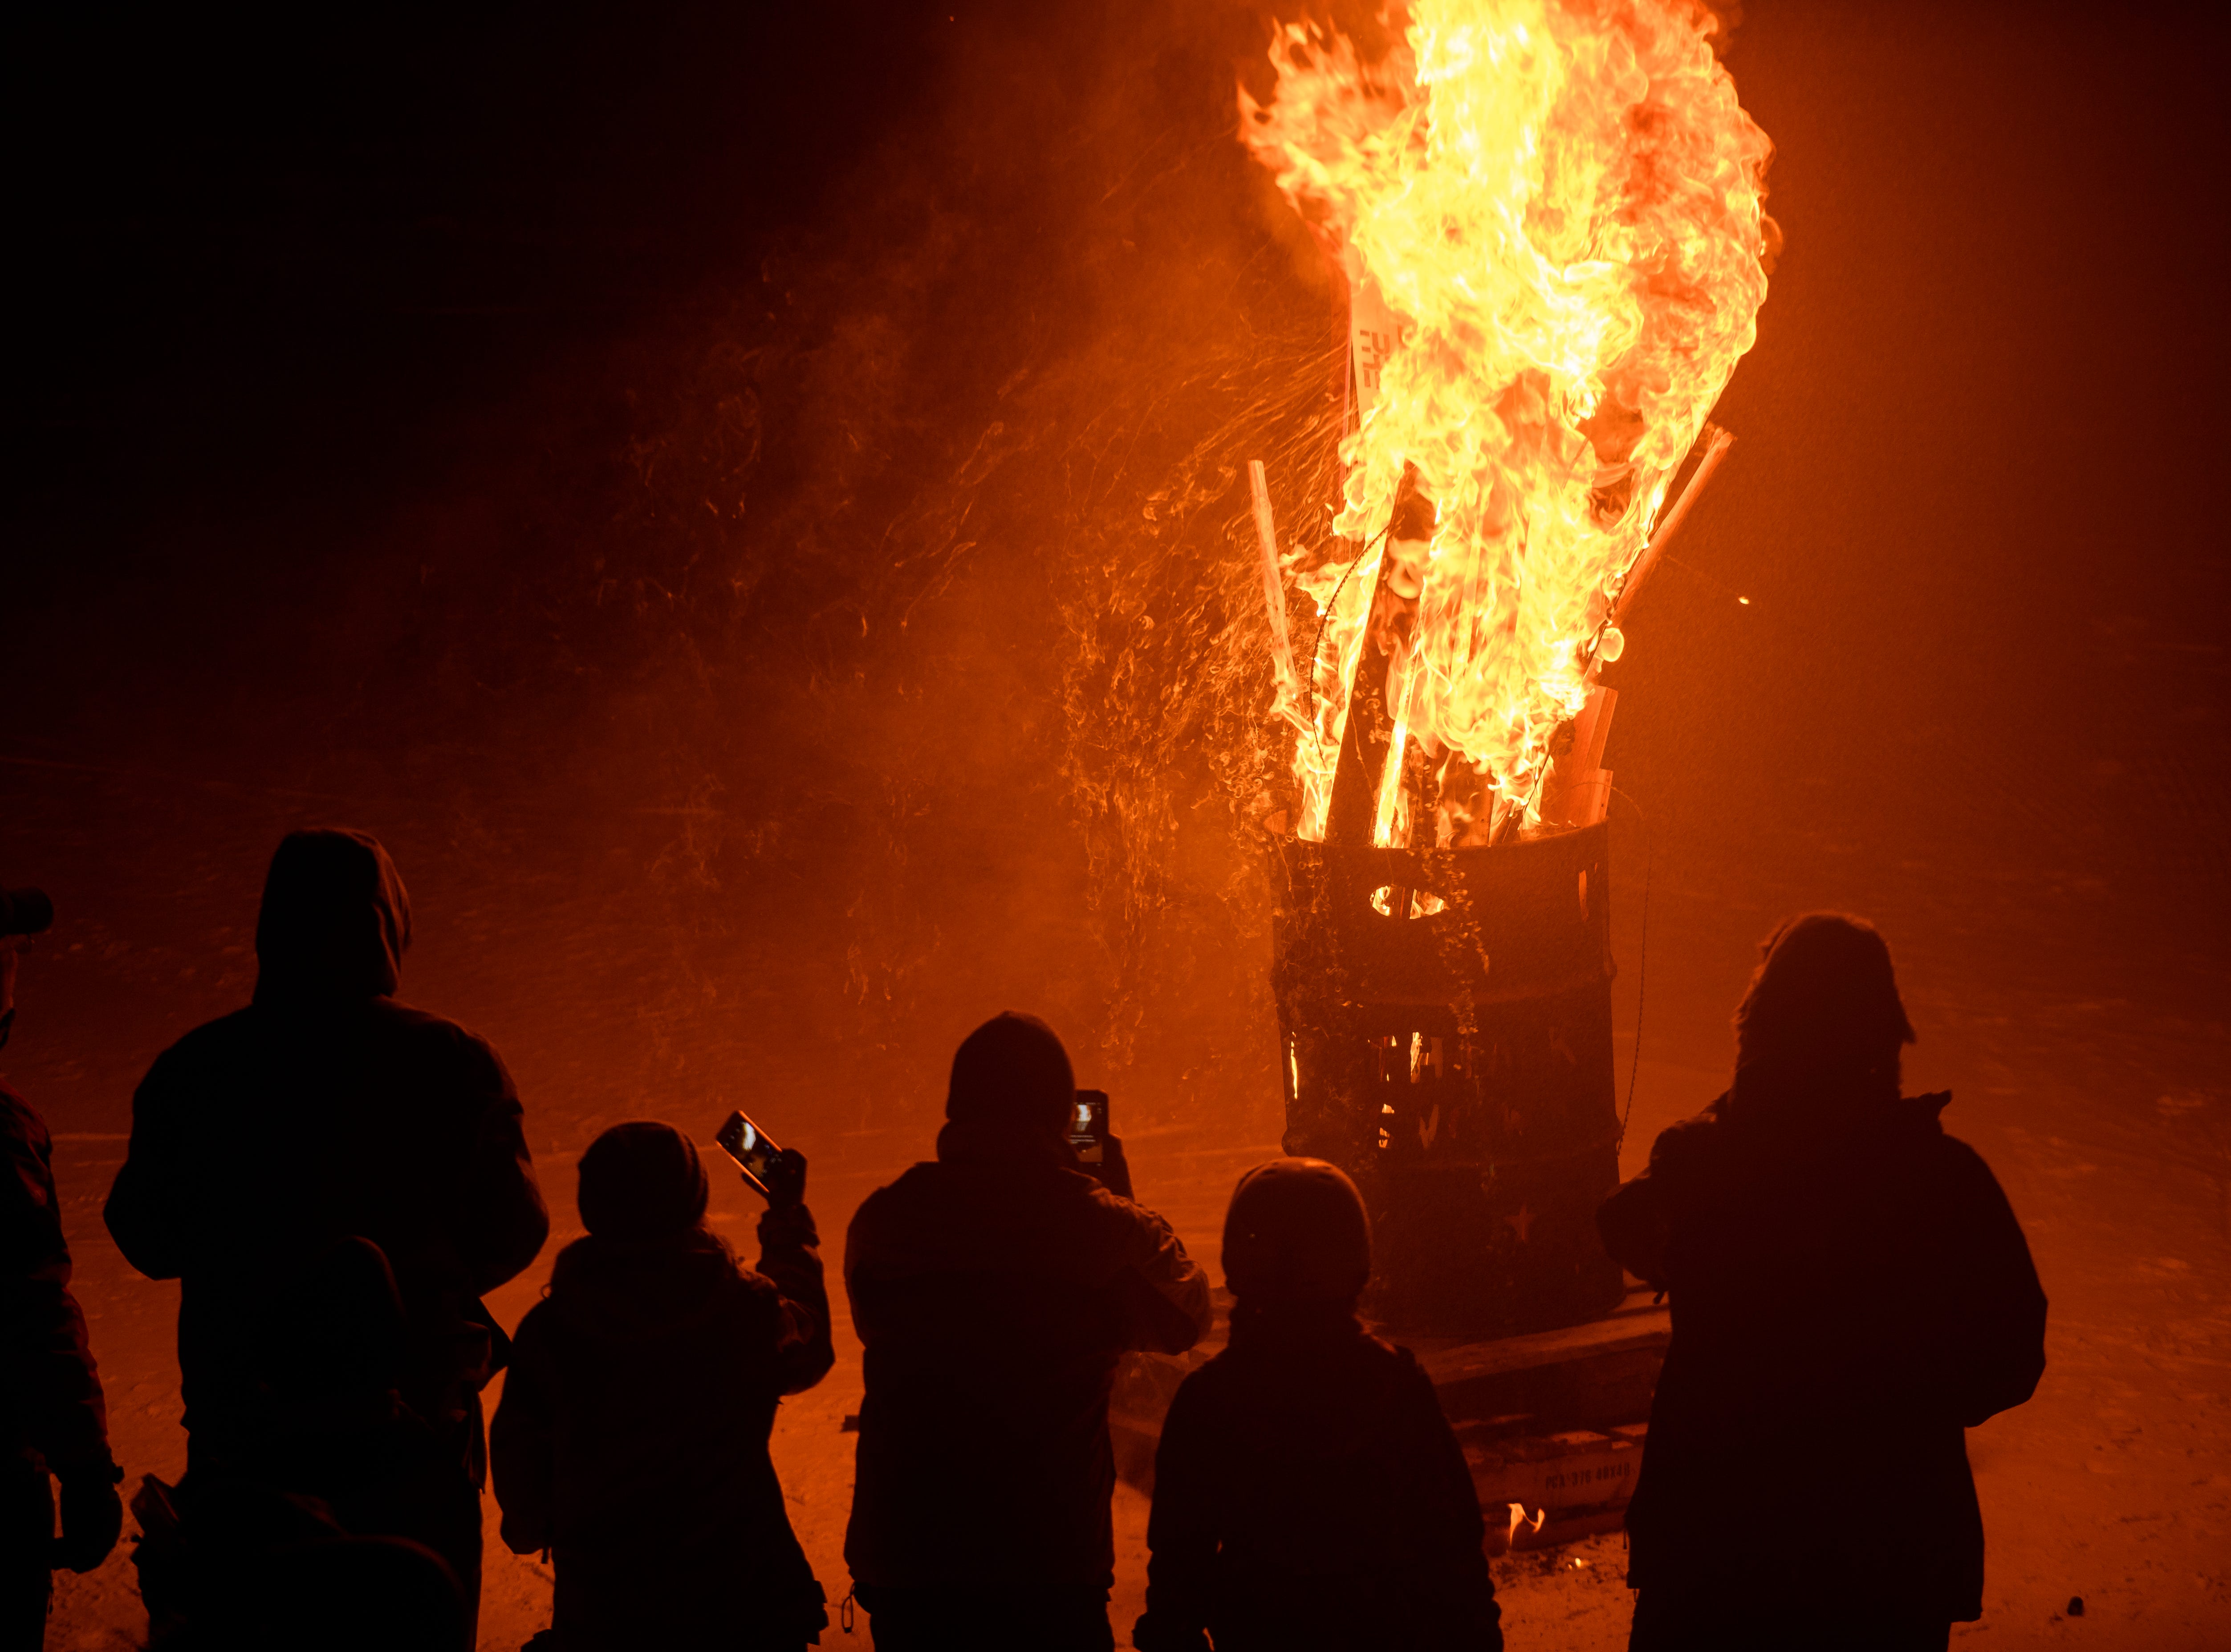 Skiers bring in the winter season by sacrificing skis and snow boards to ULLR, the Norse god of snow at Brian Head Resort Saturday, December 8, 2018. The celebration included live music, a drum circle, and fire dancing.